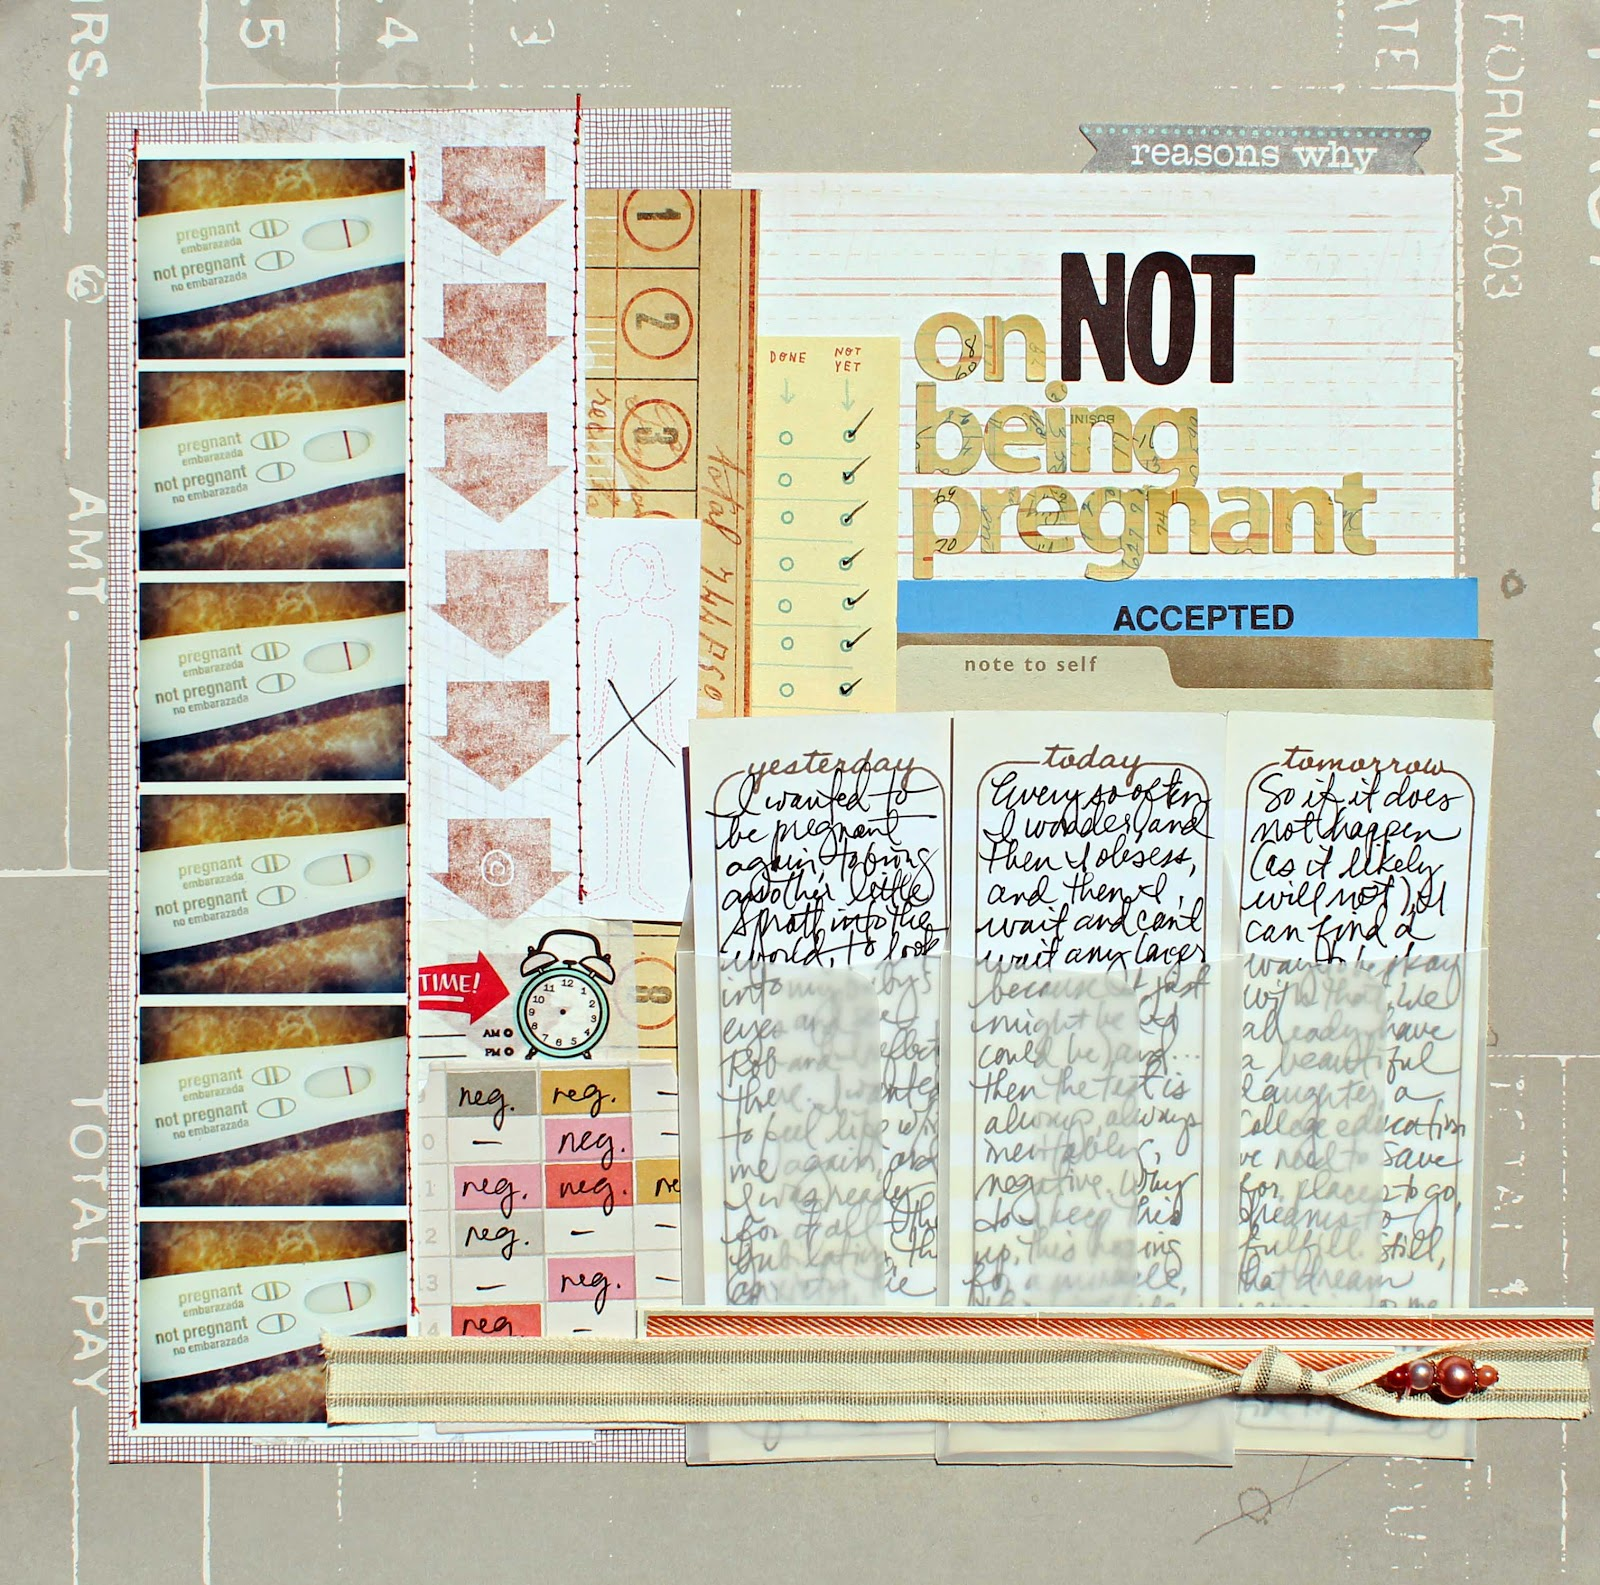 Scrapbook ideas list - As I Shared When I First Posted This At Two Peas Usually When Scrappers Share Images Of Pregnancy Tests The Tests Are Positive